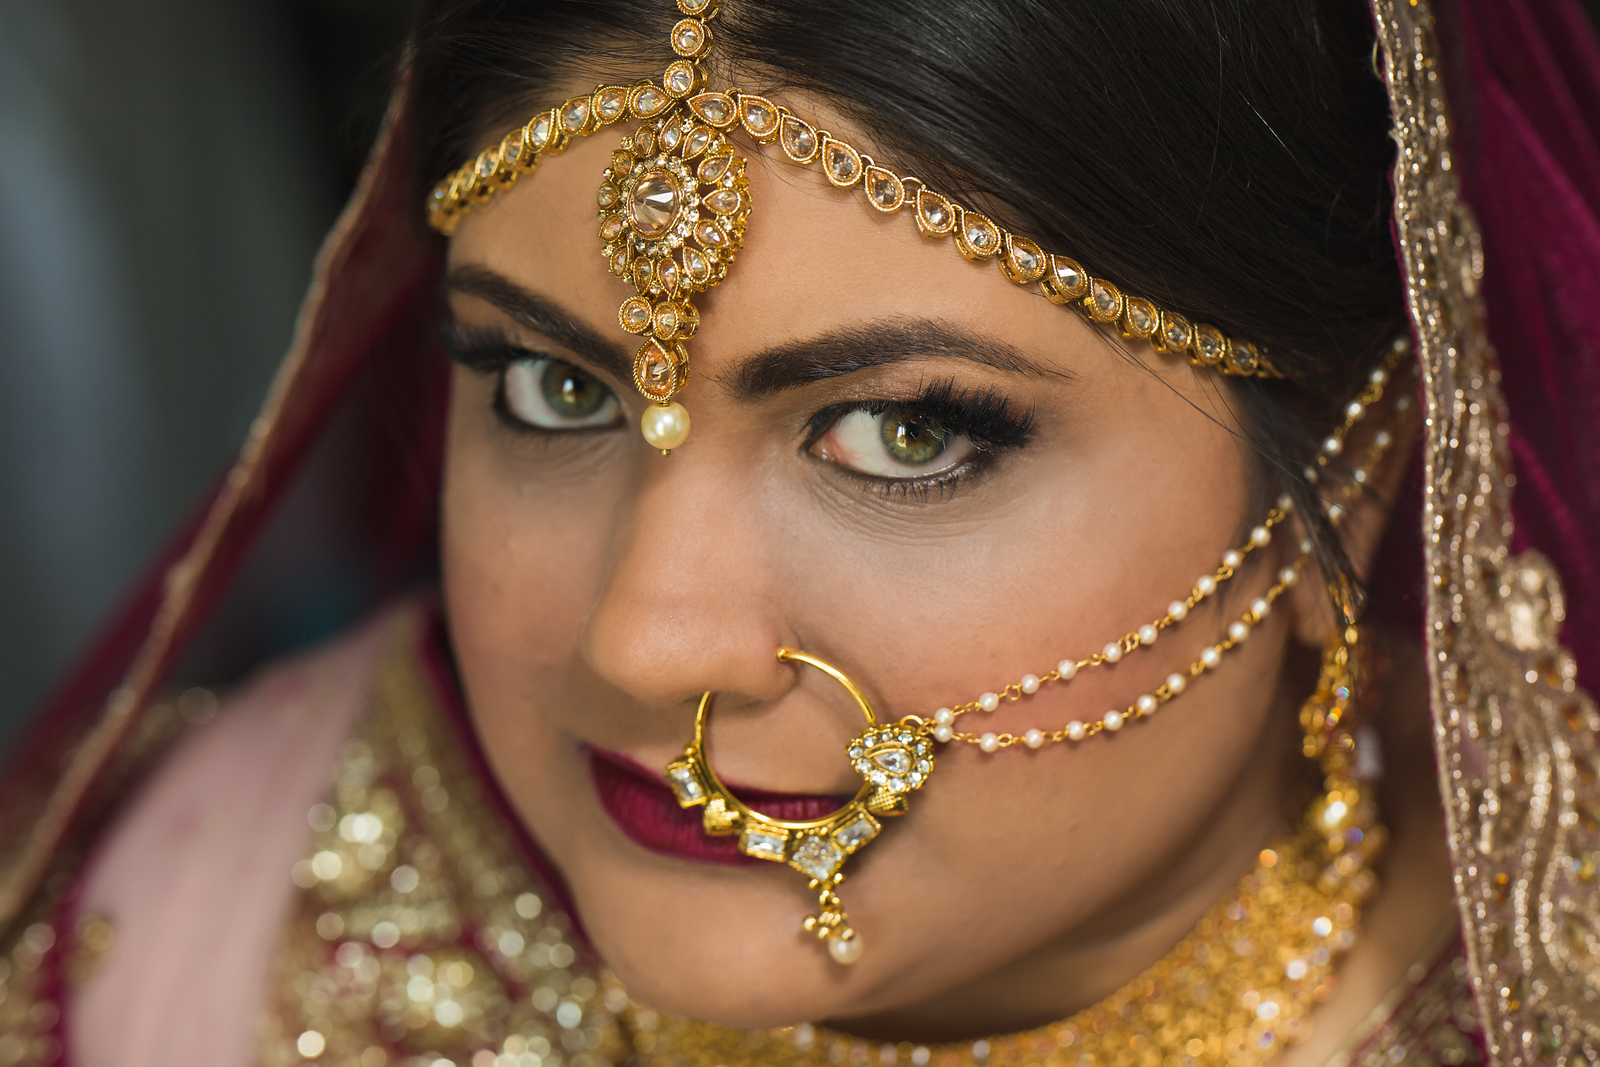 Bride close up at traditional Hindu wedding in Oklahoma